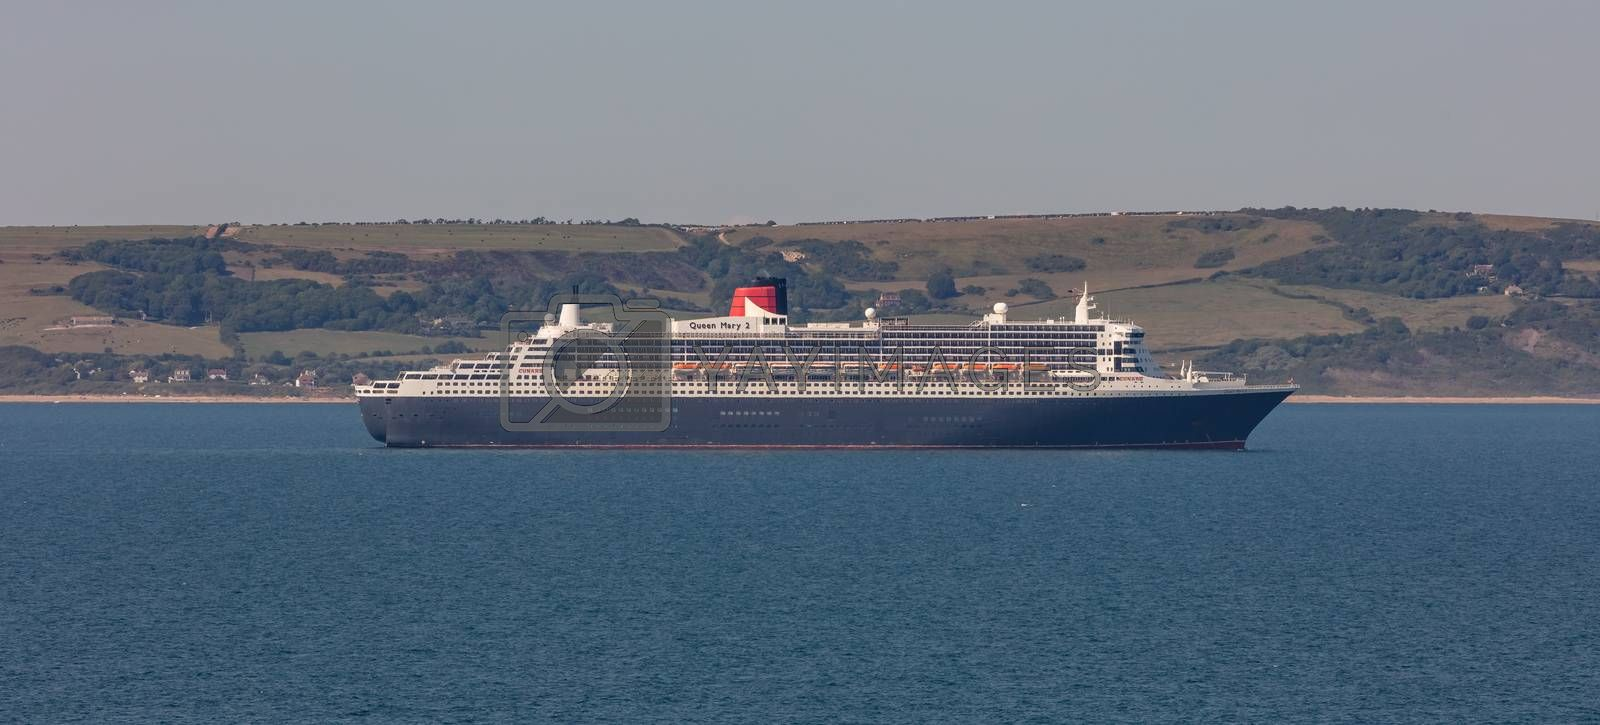 Weymouth Bay, United Kingdom - June 25, 2020: Beautiful panoramic shot of Cunard cruise ship Queen Mary 2 anchored in Weymouth Bay.